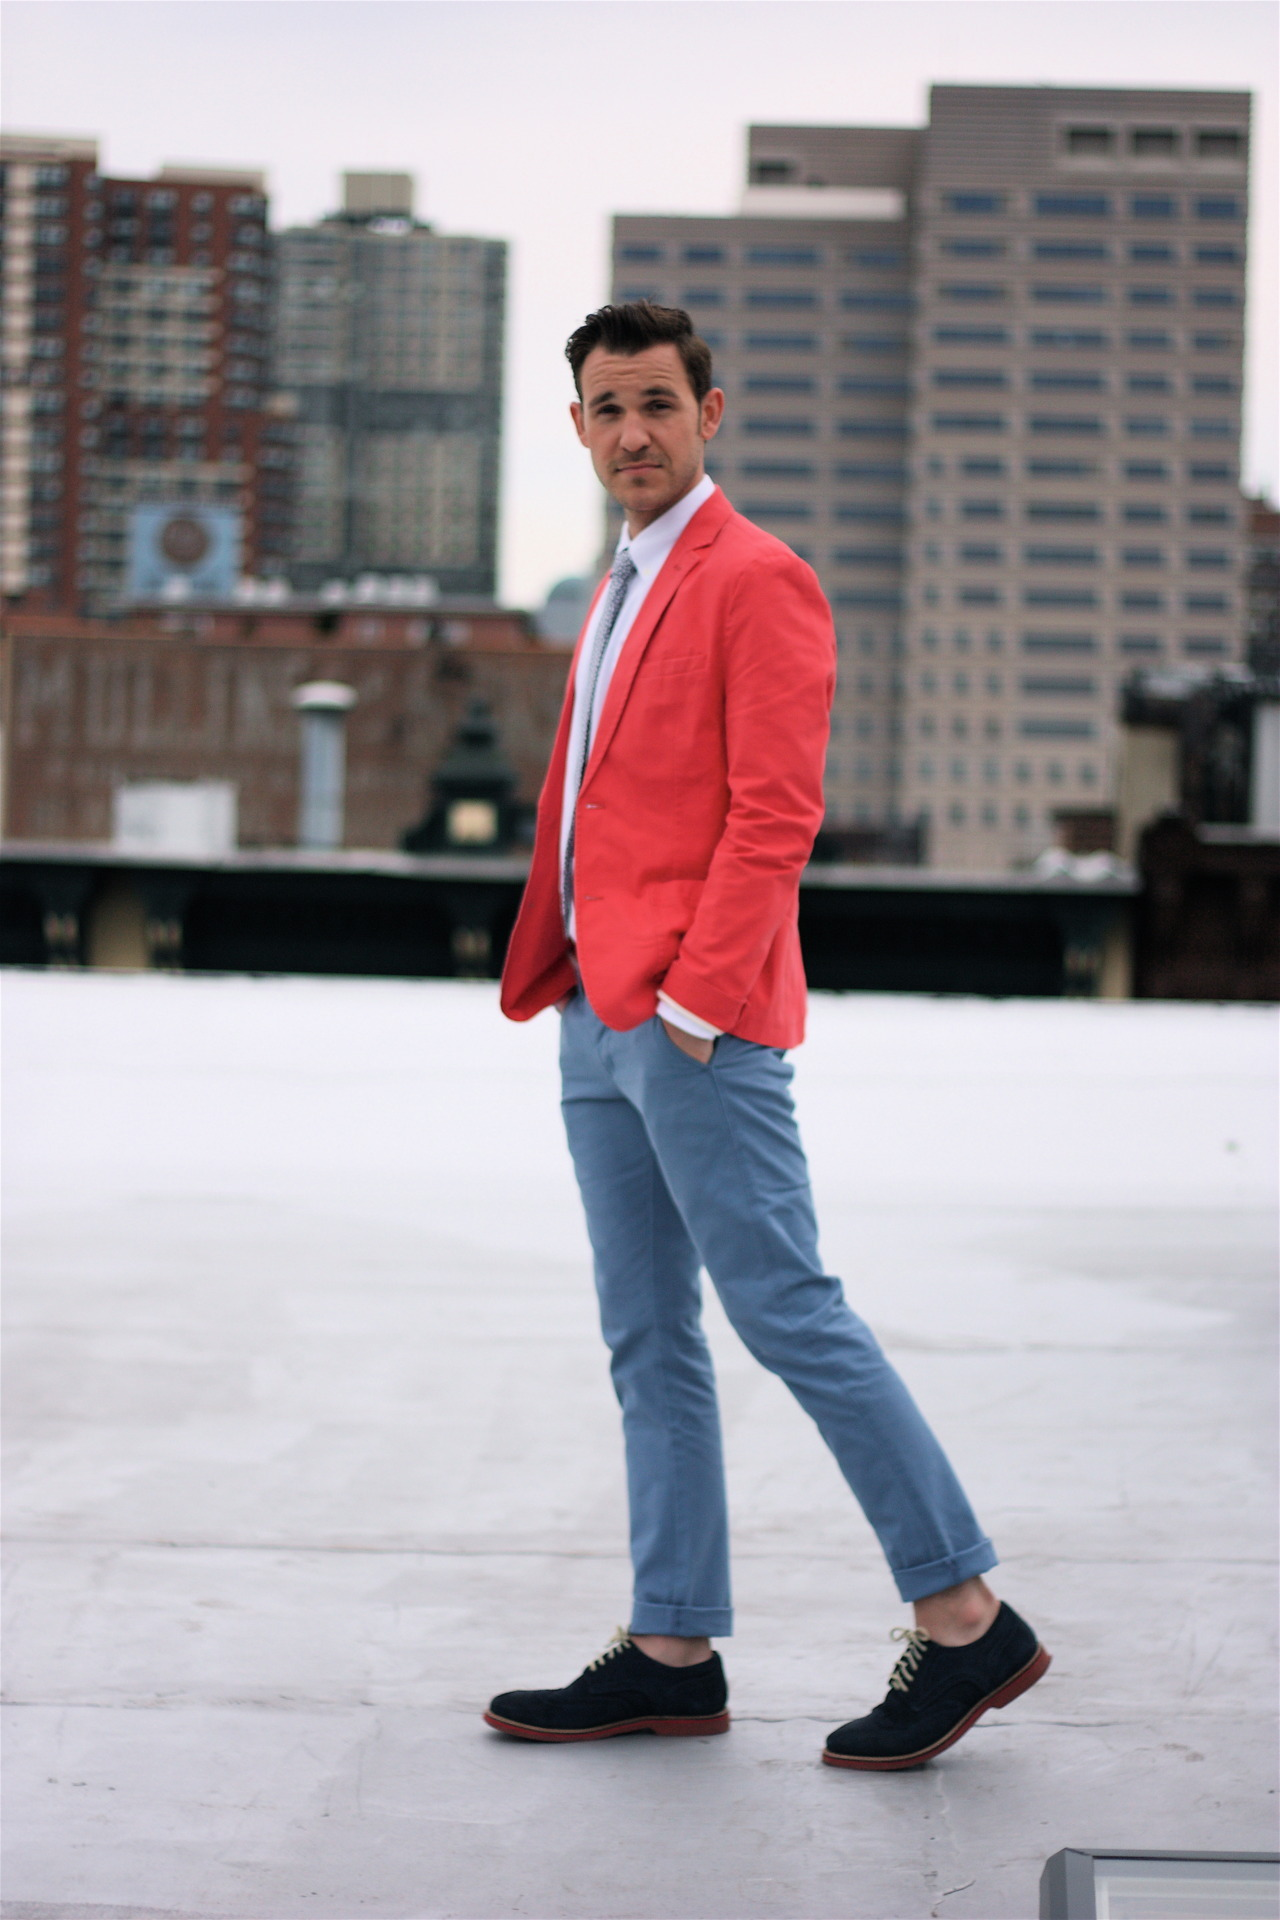 "The Bright Colored Blazer - Take 2 Another outfit with this salmon colored blazer. Last time we paired it with muted earth tones and this time we matched bright with bright. Almost like an ""Easter"" version of red, white, and blue. Since the colors are all bold, we kept the patterns simple - all solids with just a small floral print in the tie. Happy Passover, Good Friday, Easter, and Zombie Jesus Day everyone! Blazer - ASOS Shirt - Uniqlo Tie - Ben Sherman via Macy's Pants - Levi's Shoes - Nordstrom 1901 Location - Jersey City, NJ"